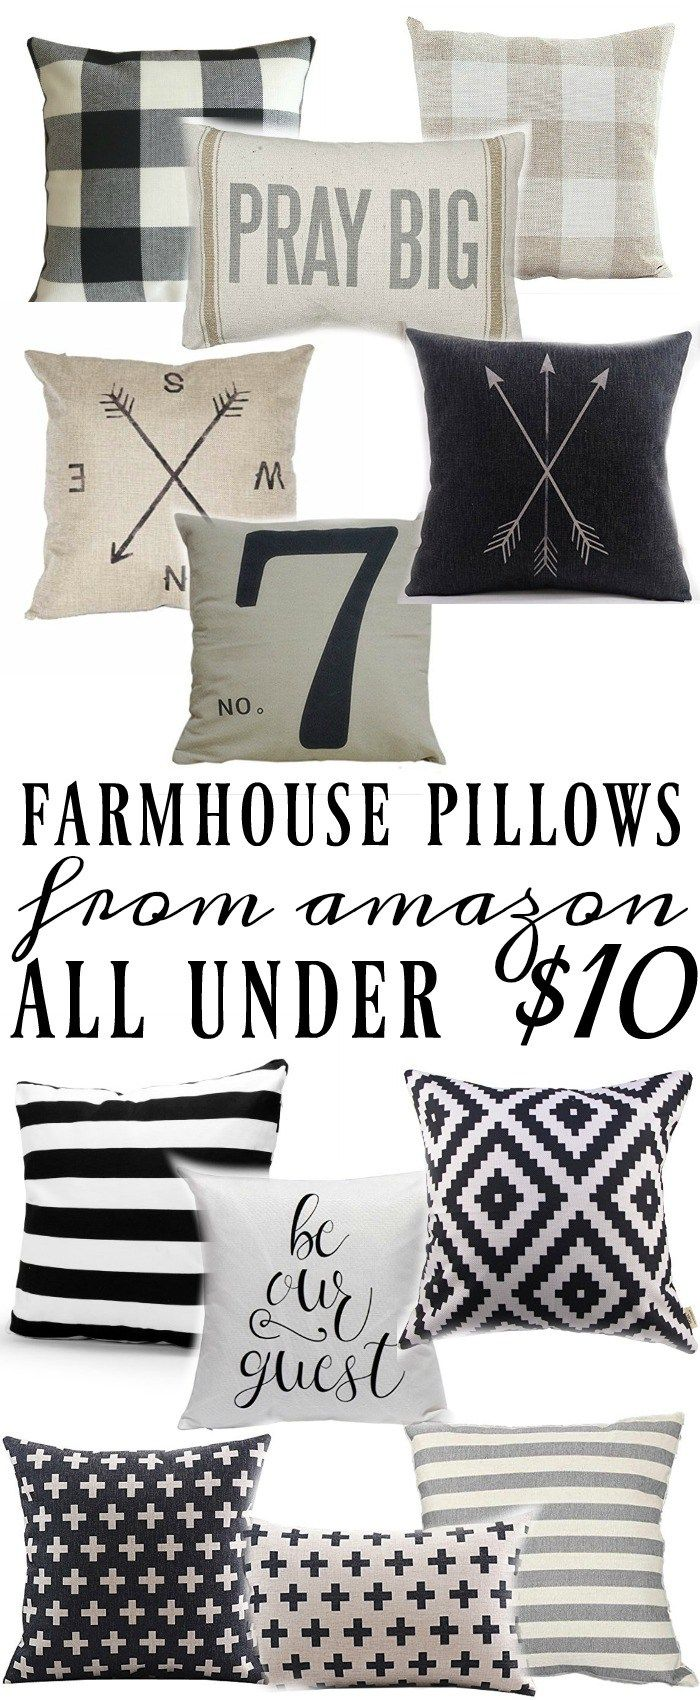 Cheap Decorative Pillows Under $10 Captivating Farmhouse Style Pillows All Under $10  Big Pillows Grey Stripes Decorating Inspiration